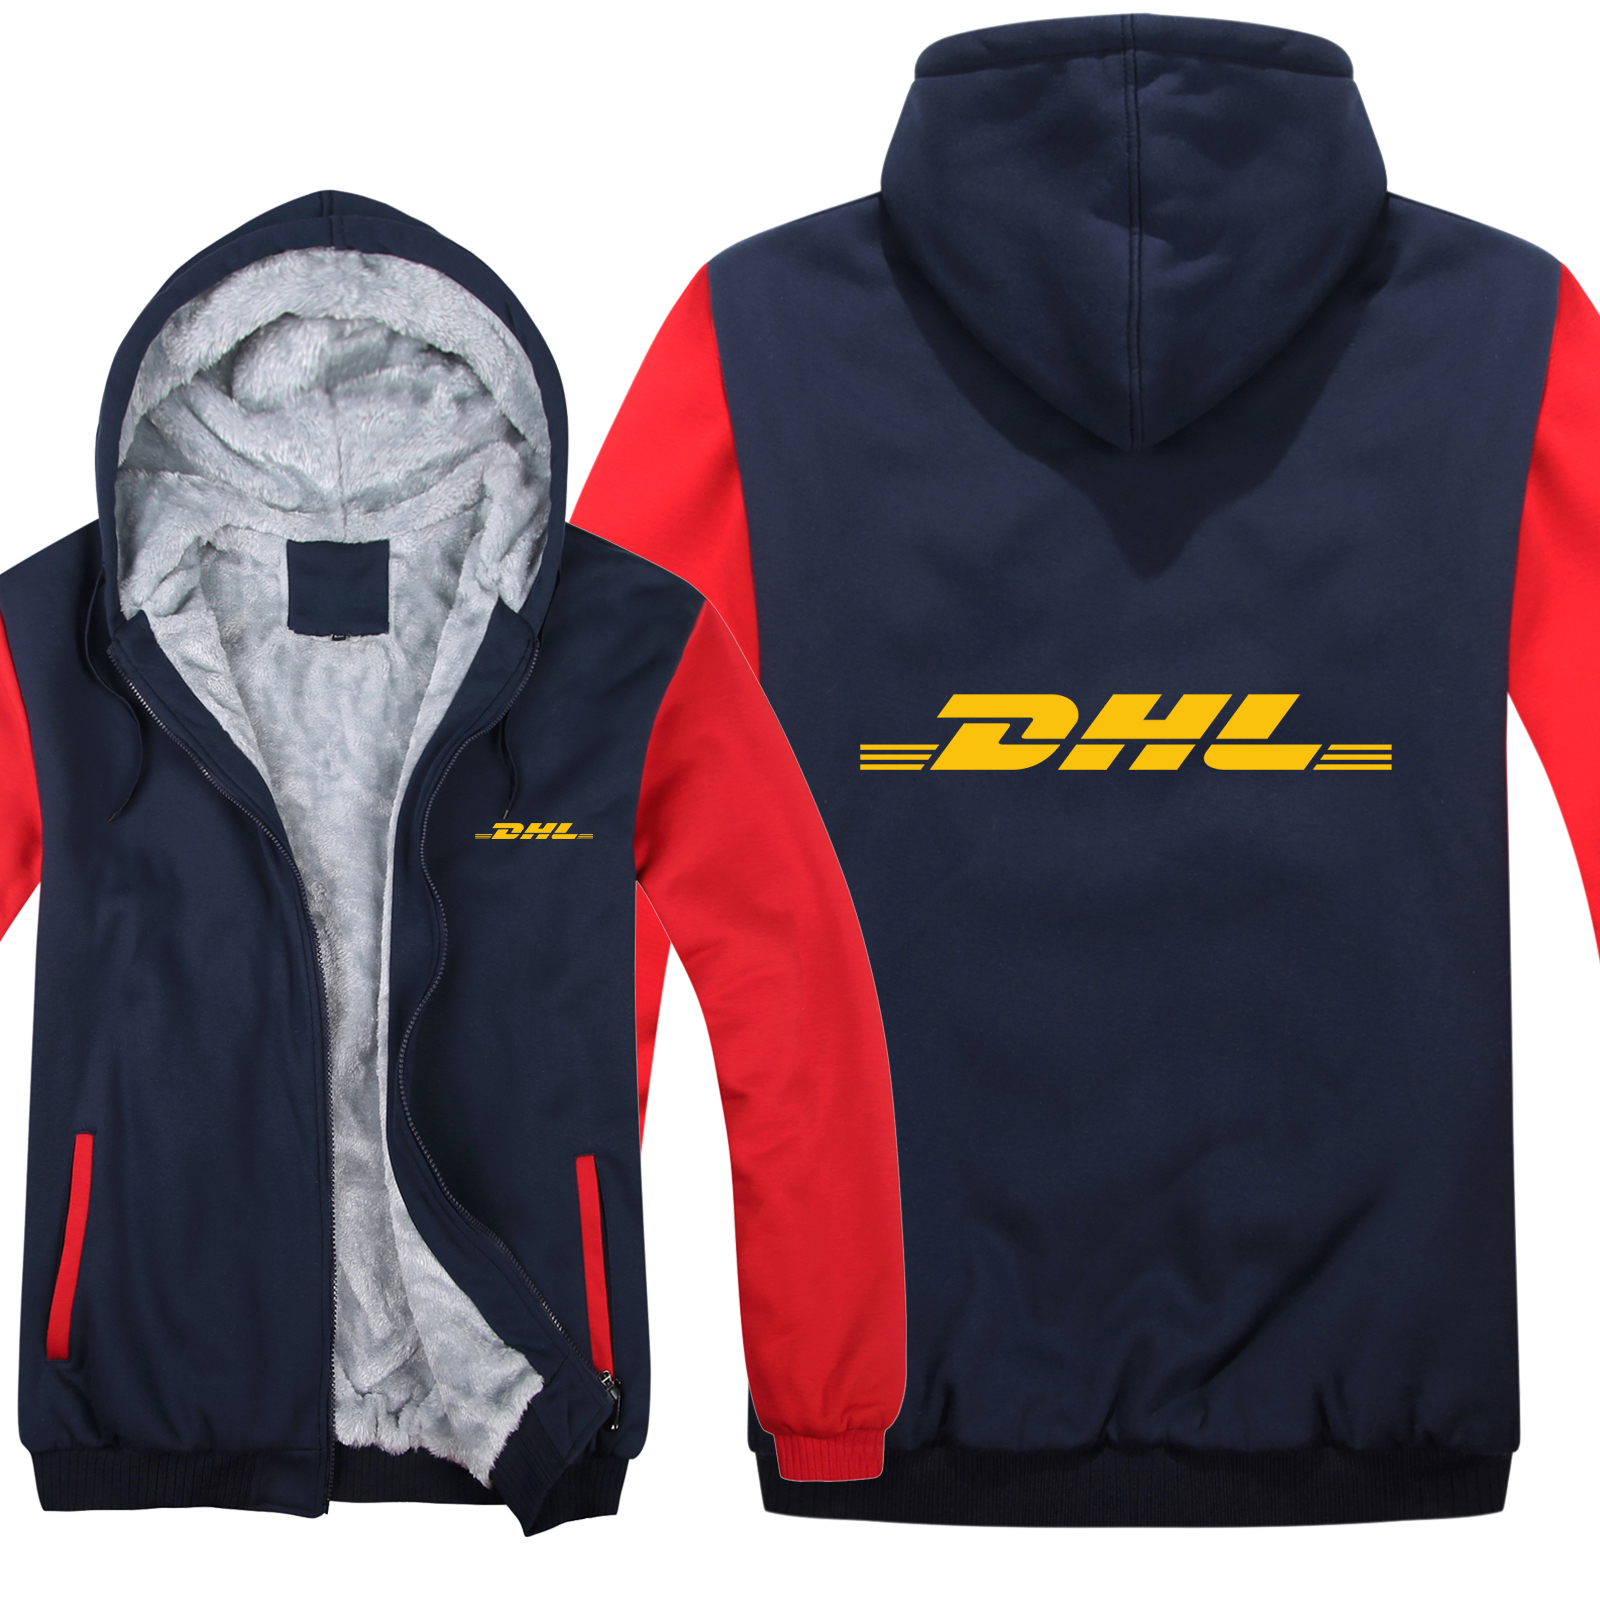 Winter DHL Hoodies Men Fashion Coat Pullover Wool Liner Jacket DHL Sweatshirts Hoody HS-058